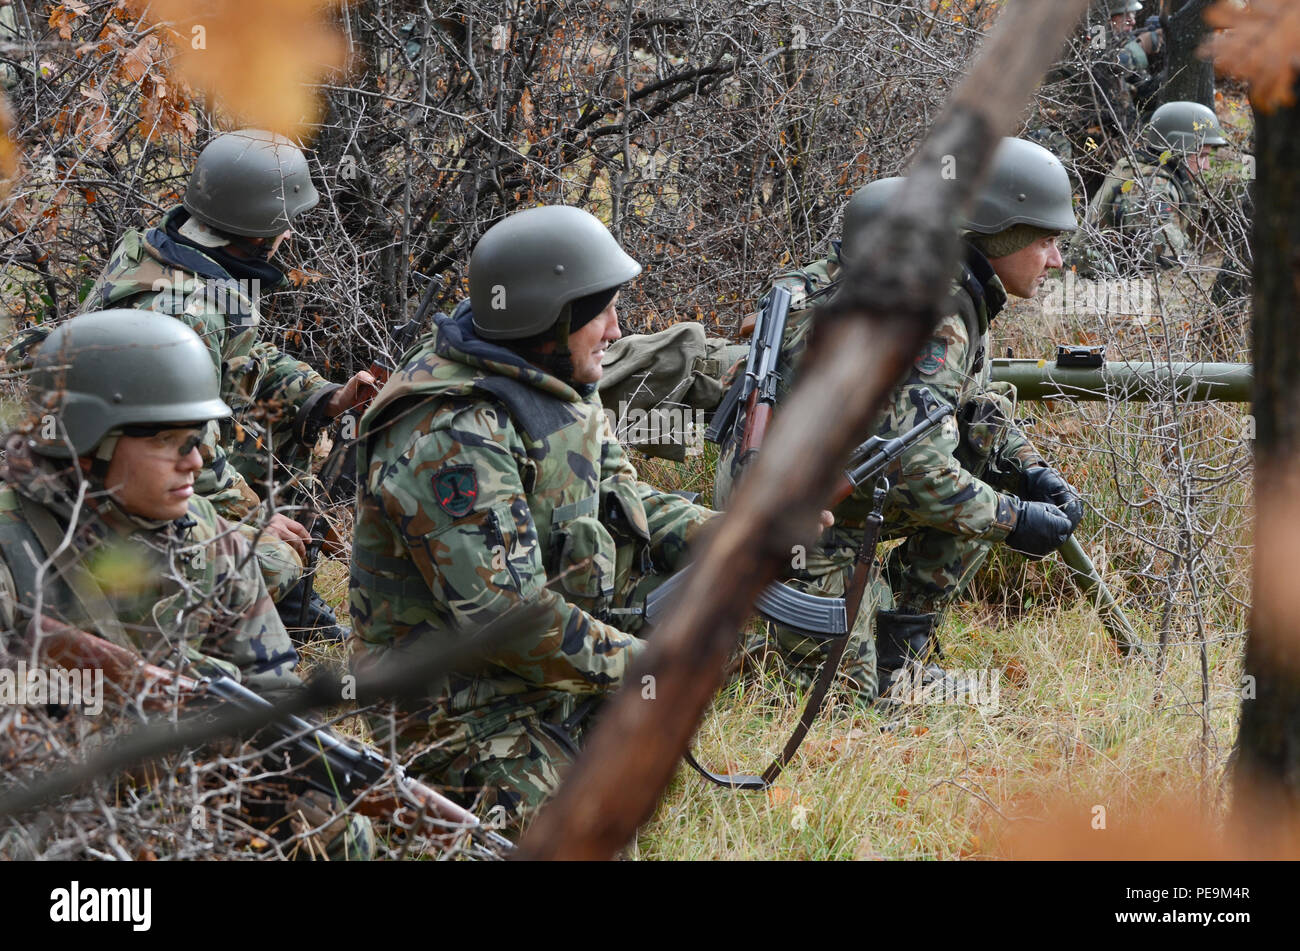 Bulgarian soldiers of 1-61st Mechanized Battalion steady their positions in the tree line as the enemy begins its approach during Exercise Peace Sentinel at Novo Selo Training Center, Bulgaria, Nov. 24, 2015. (U.S. Army photo by Staff Sgt. Steven M. Colvin/Released) - Stock Image